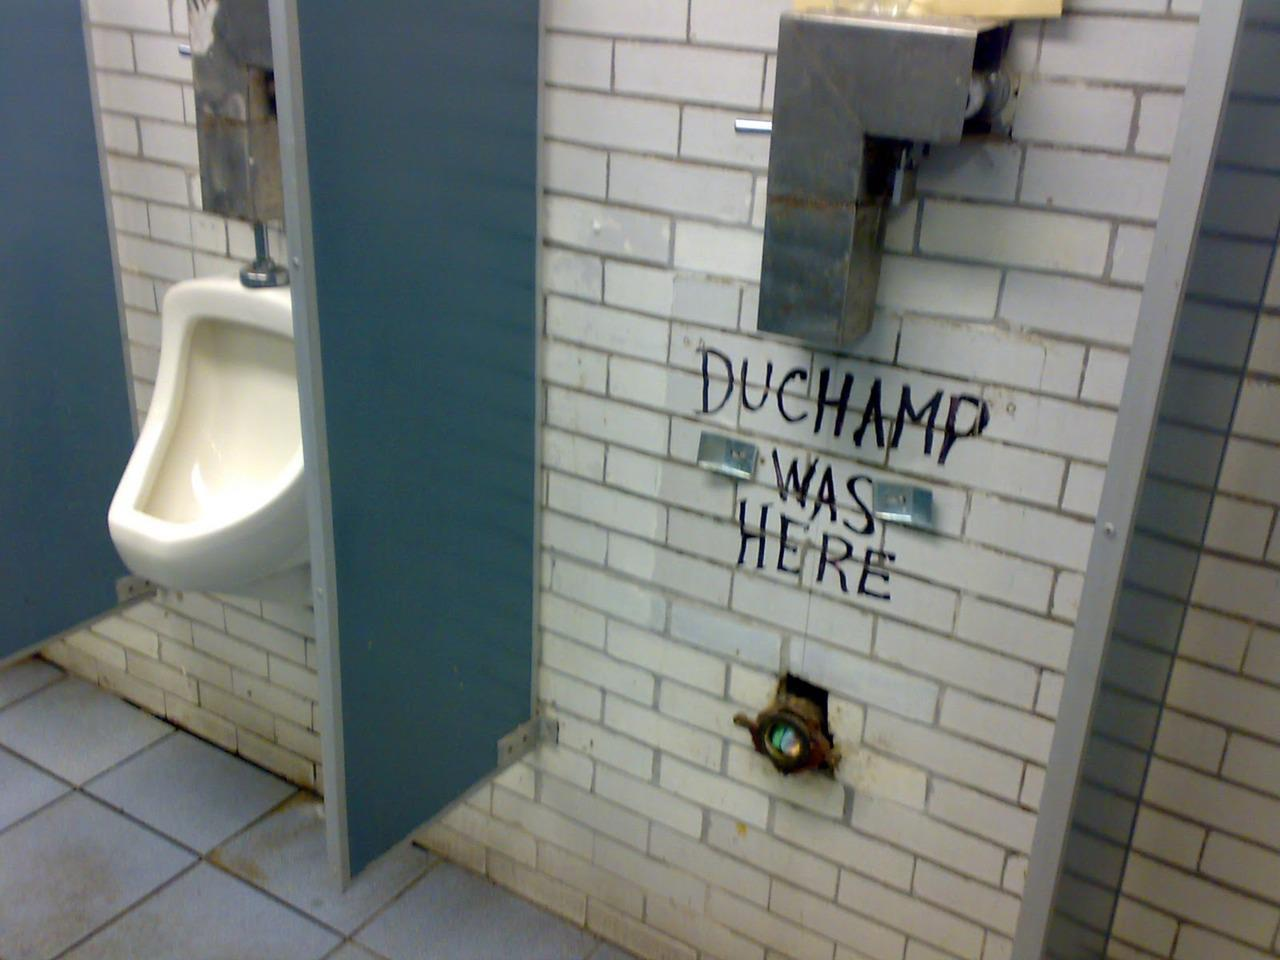 Duchamp was here.